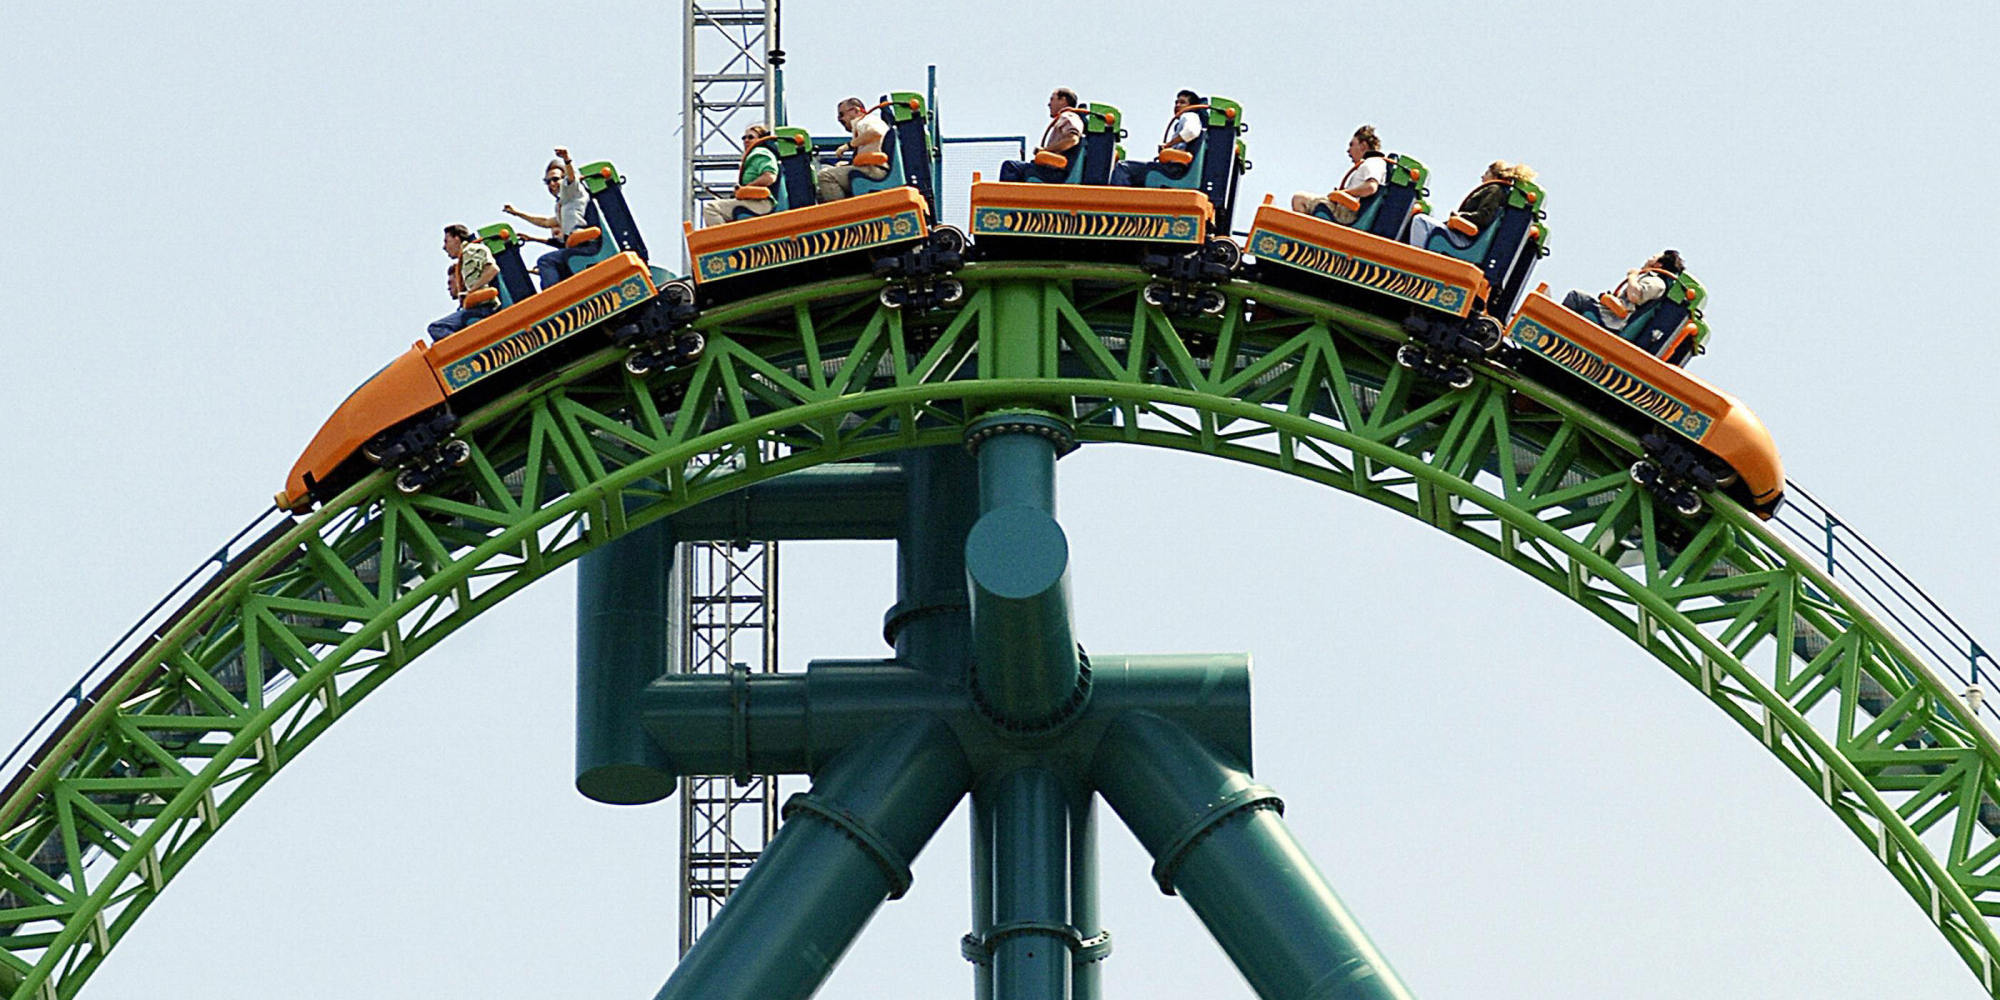 The Kingda Ka At Six Flags New Jersey Tallest Roller Coaster In Diagram Of Related Keywords Suggestions